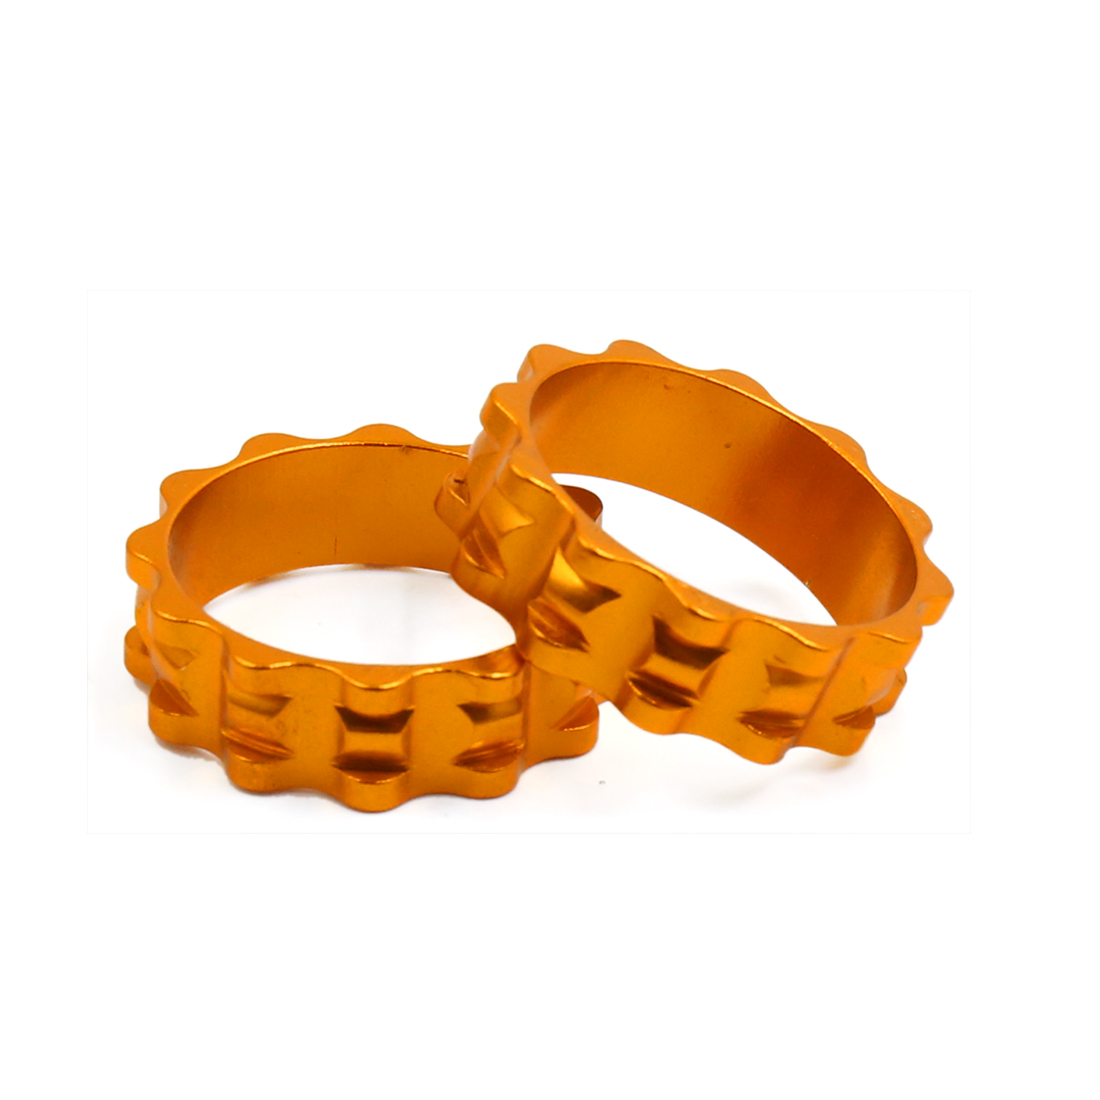 2 Pcs Stem Headset Washer Spacer Gold Tone for Road Bike MTB Bicycle